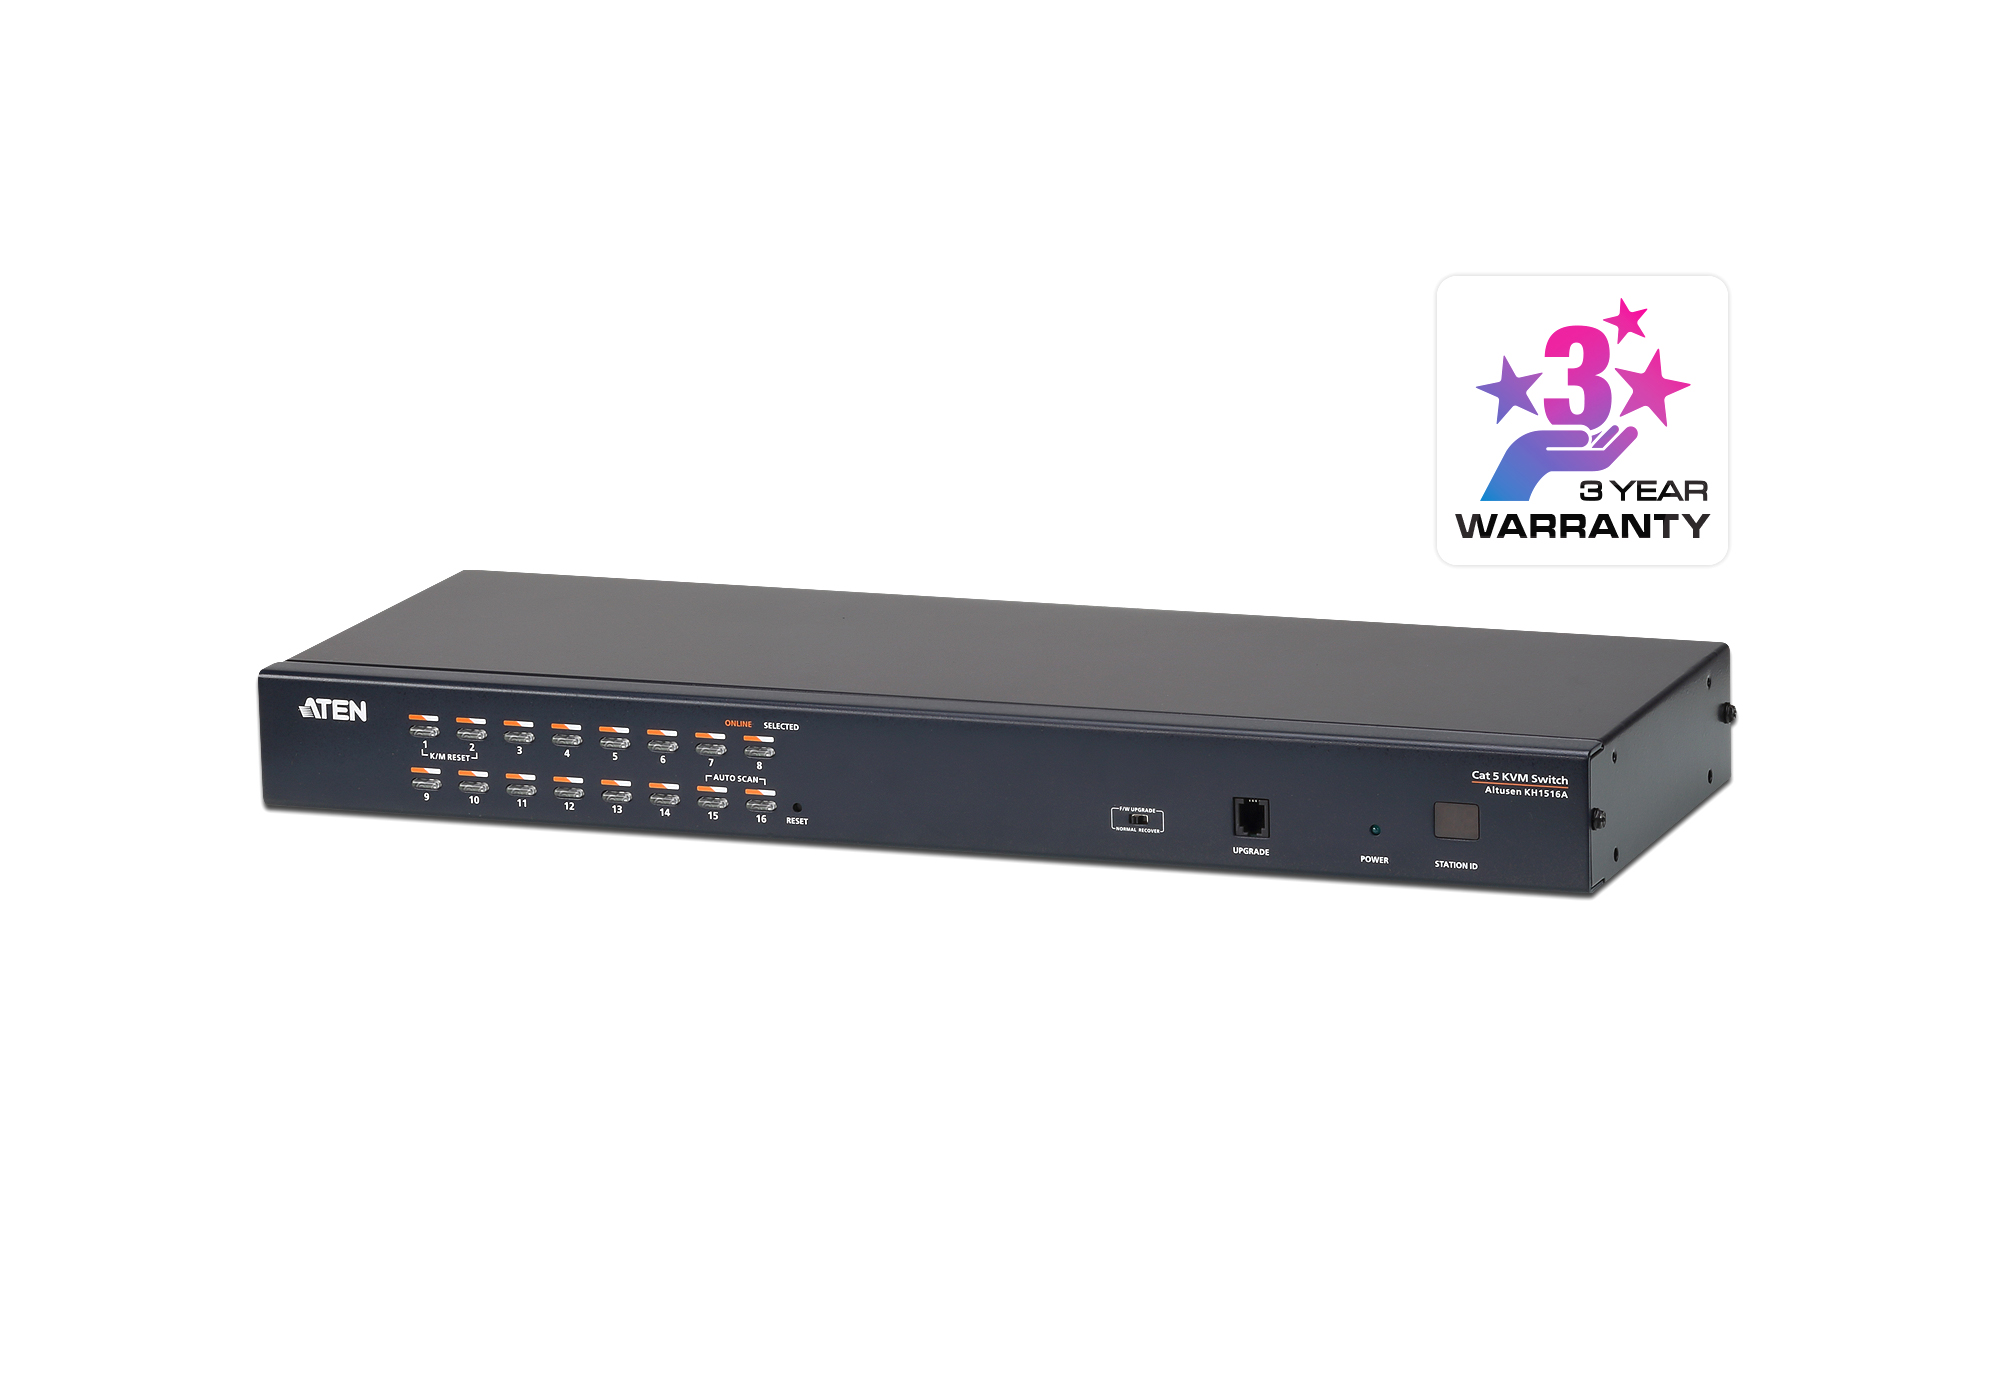 16-Port Multi-Interface (DisplayPort, HDMI, DVI, VGA) Cat 5 KVM Switch-2